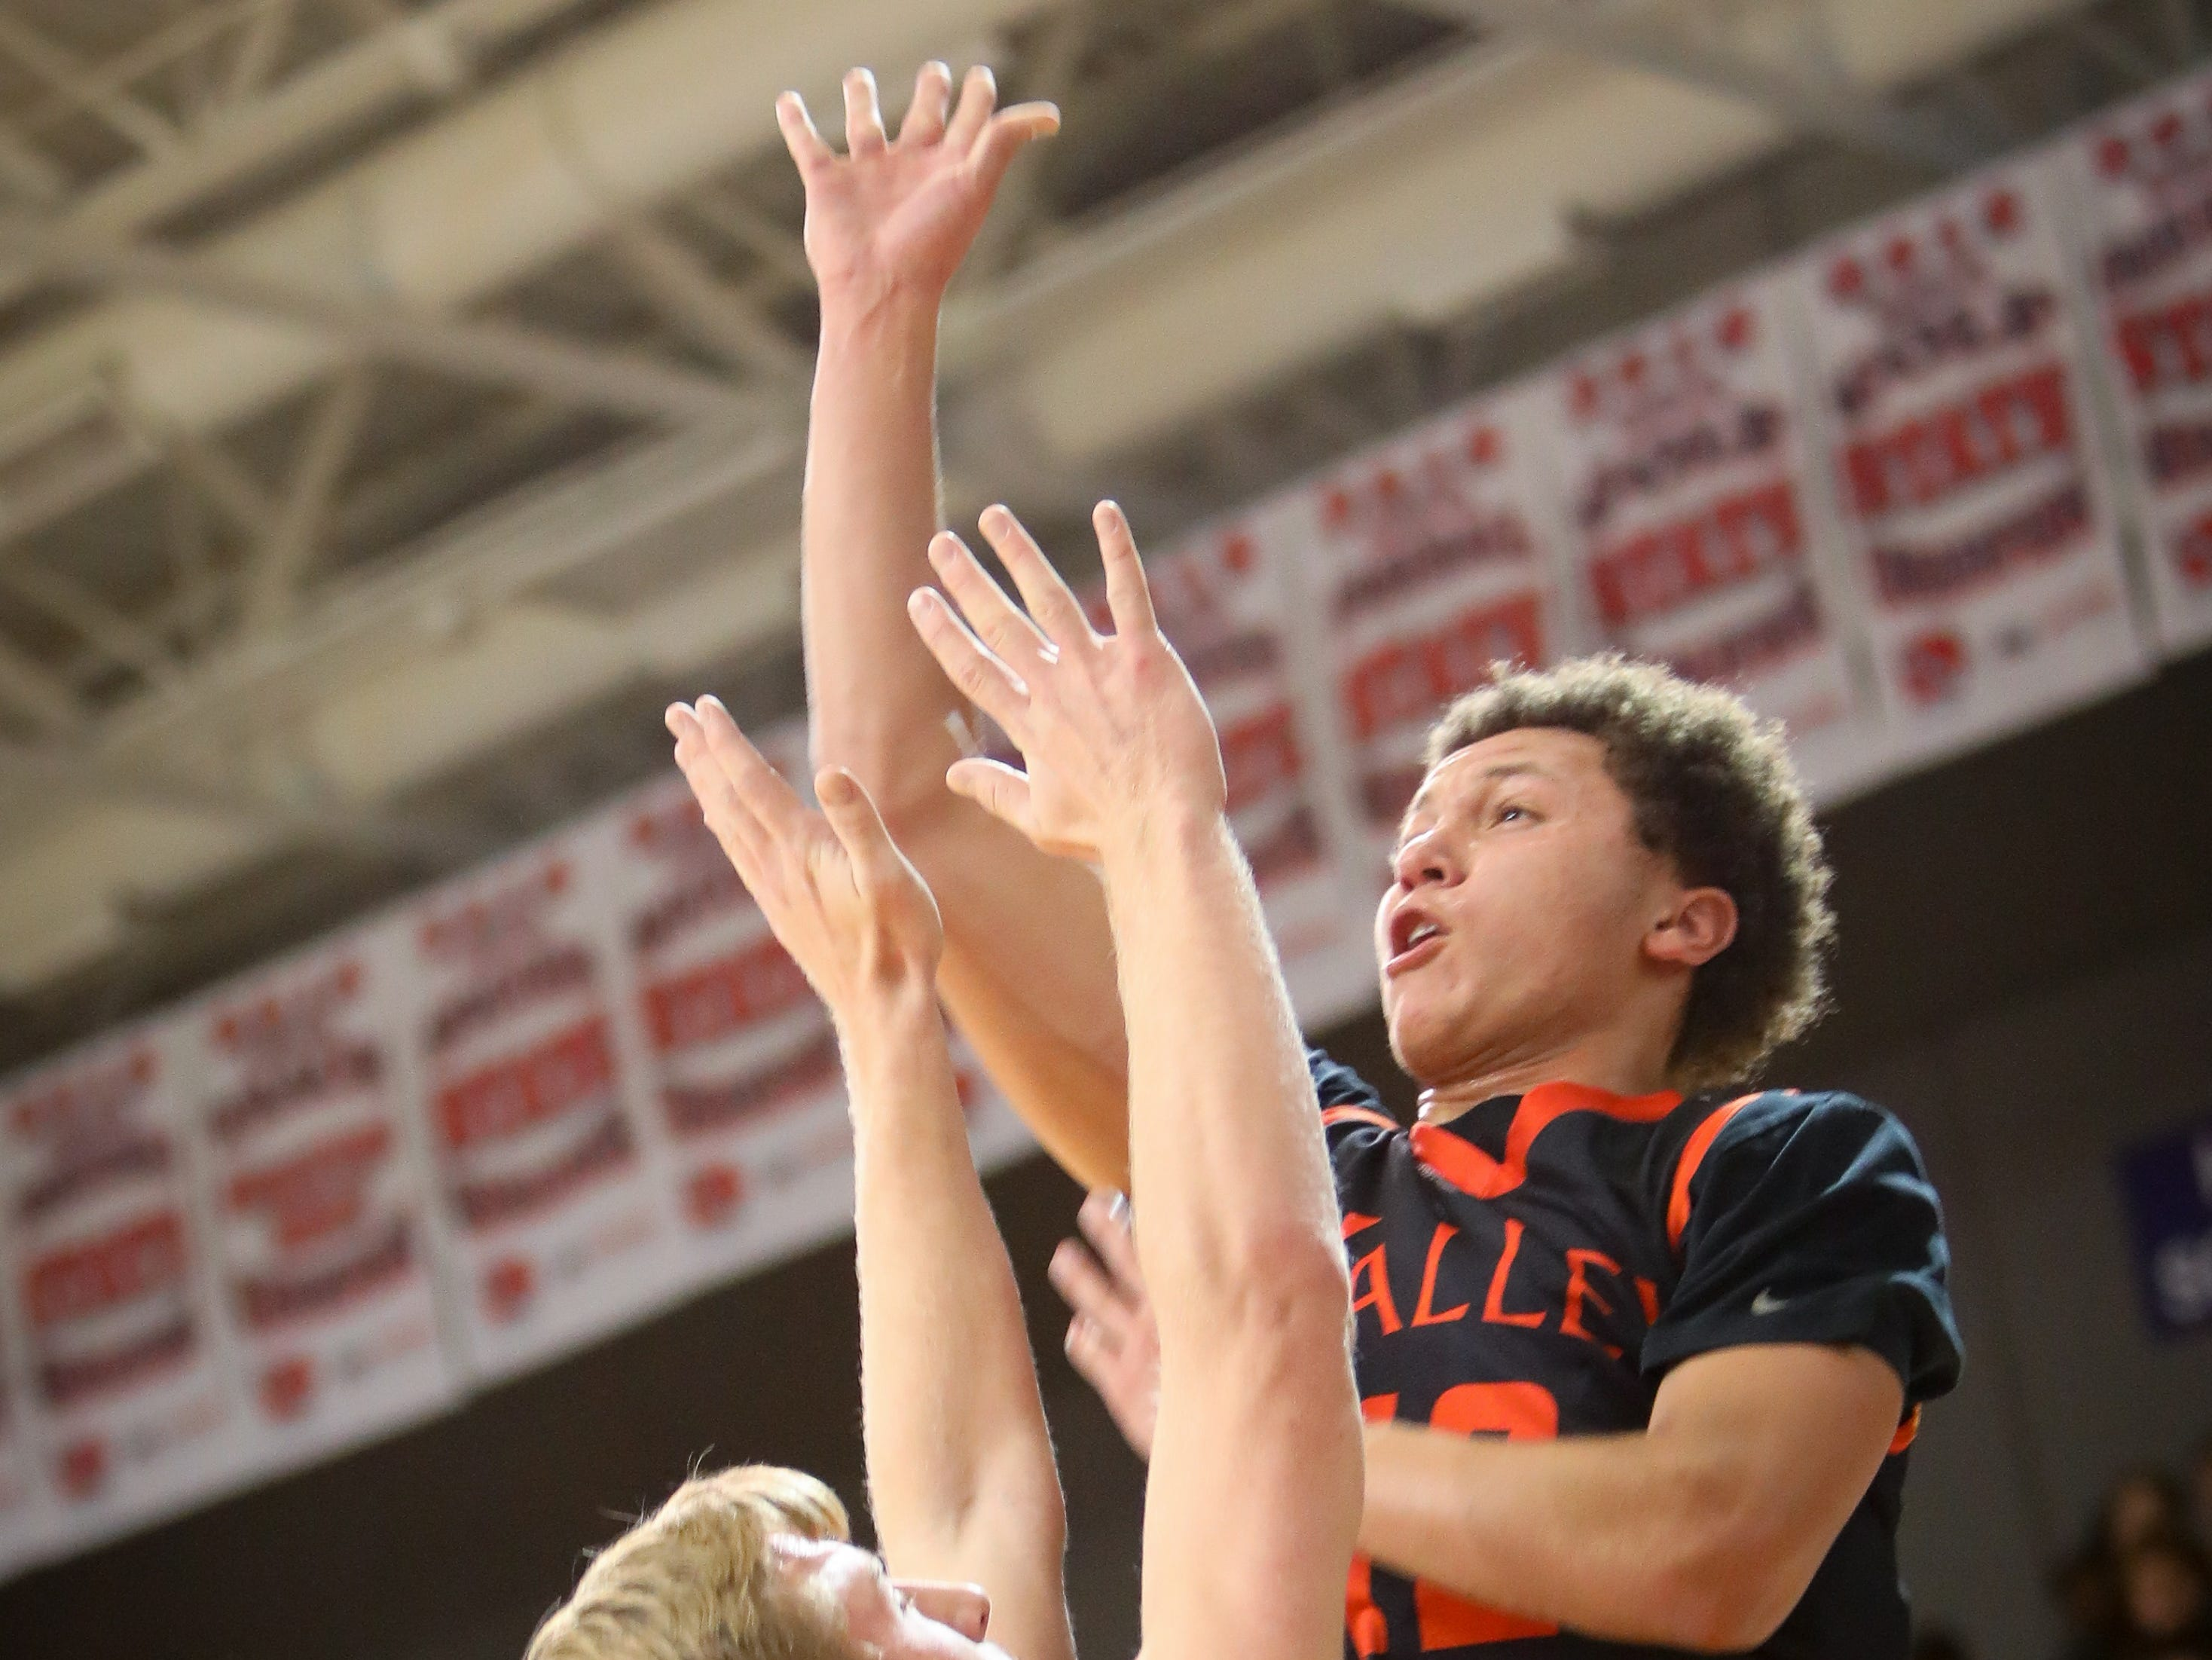 Valley senior Evan Obia floats one in over Waukee senior Trey Schaller during a boys high school basketball game between the Valley Tigers and the Waukee Warriors at Waukee High School on Dec. 14, 2018 in Waukee, Iowa.